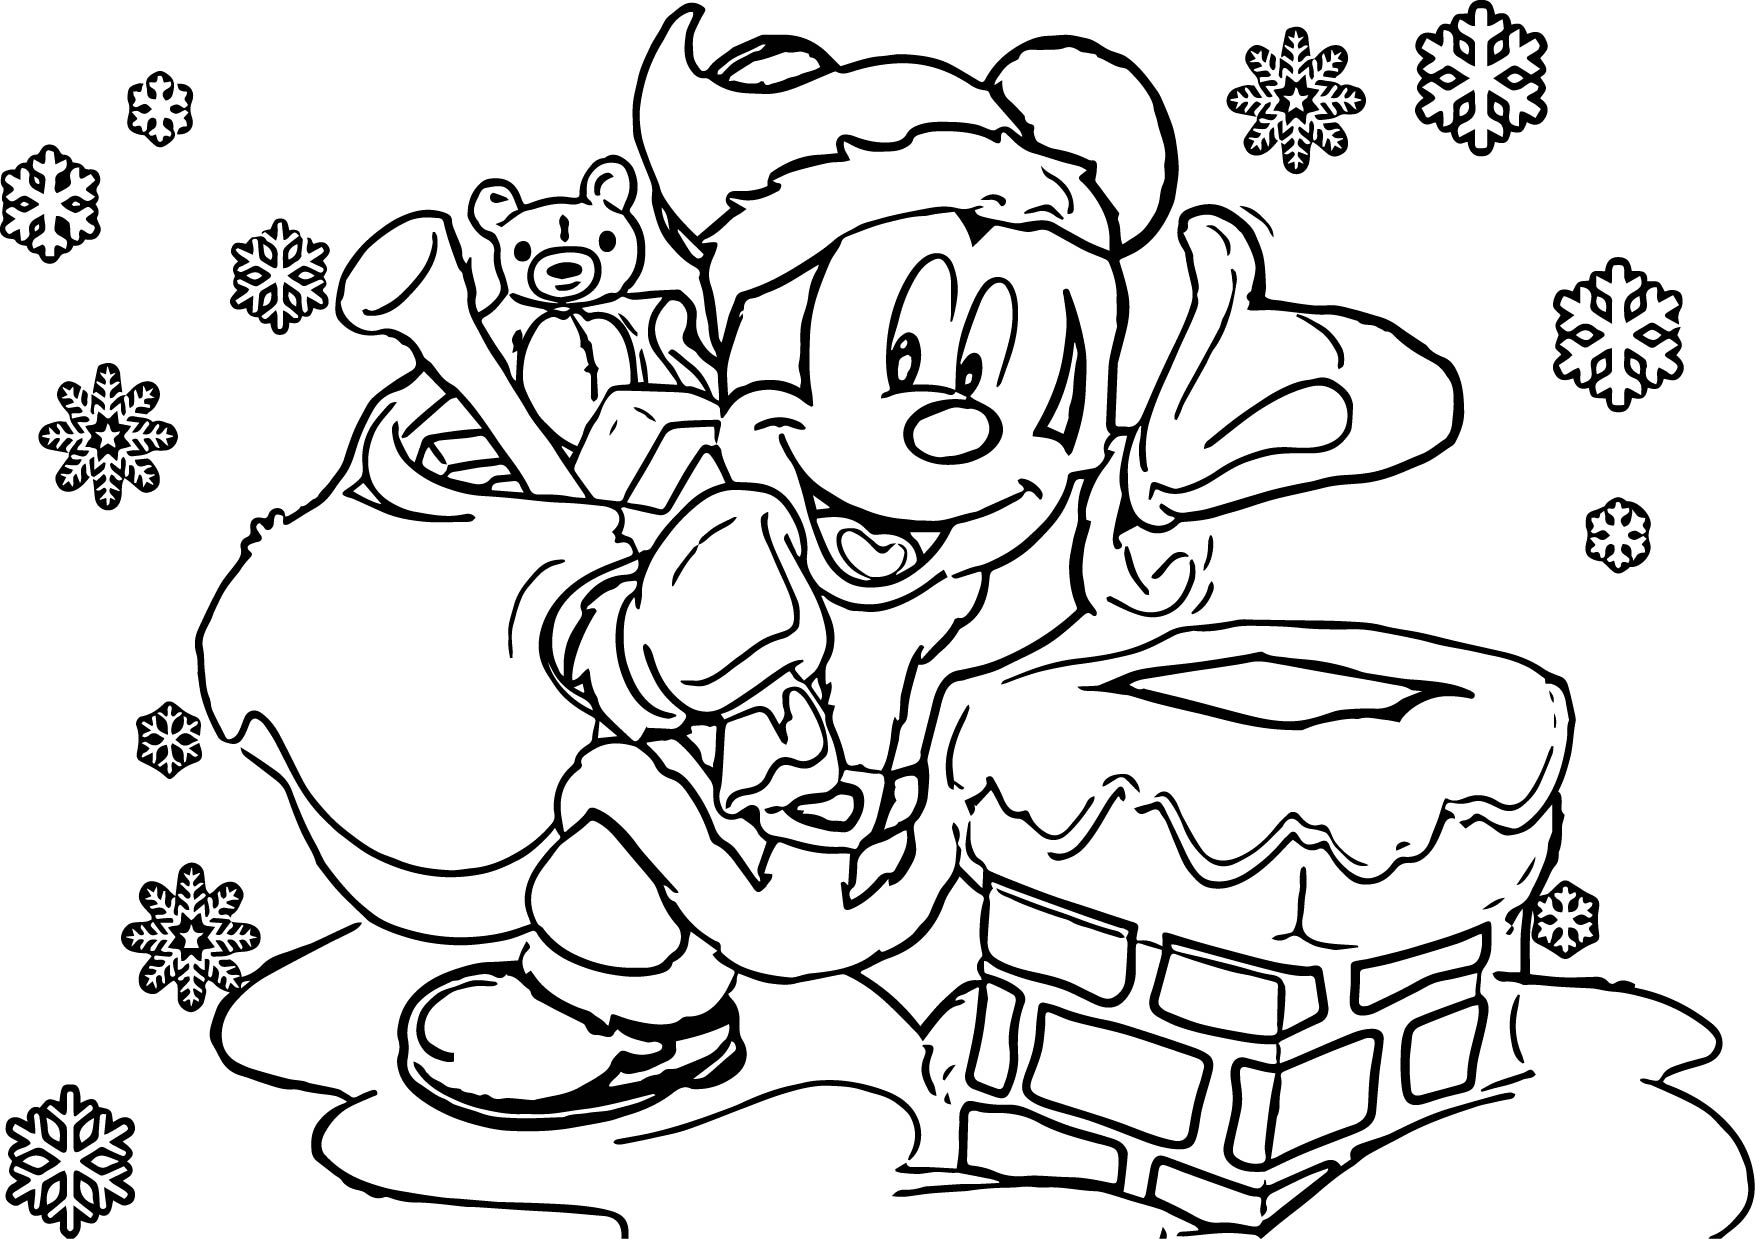 Disney Princess Christmas Coloring Pages Printable With New Gallery